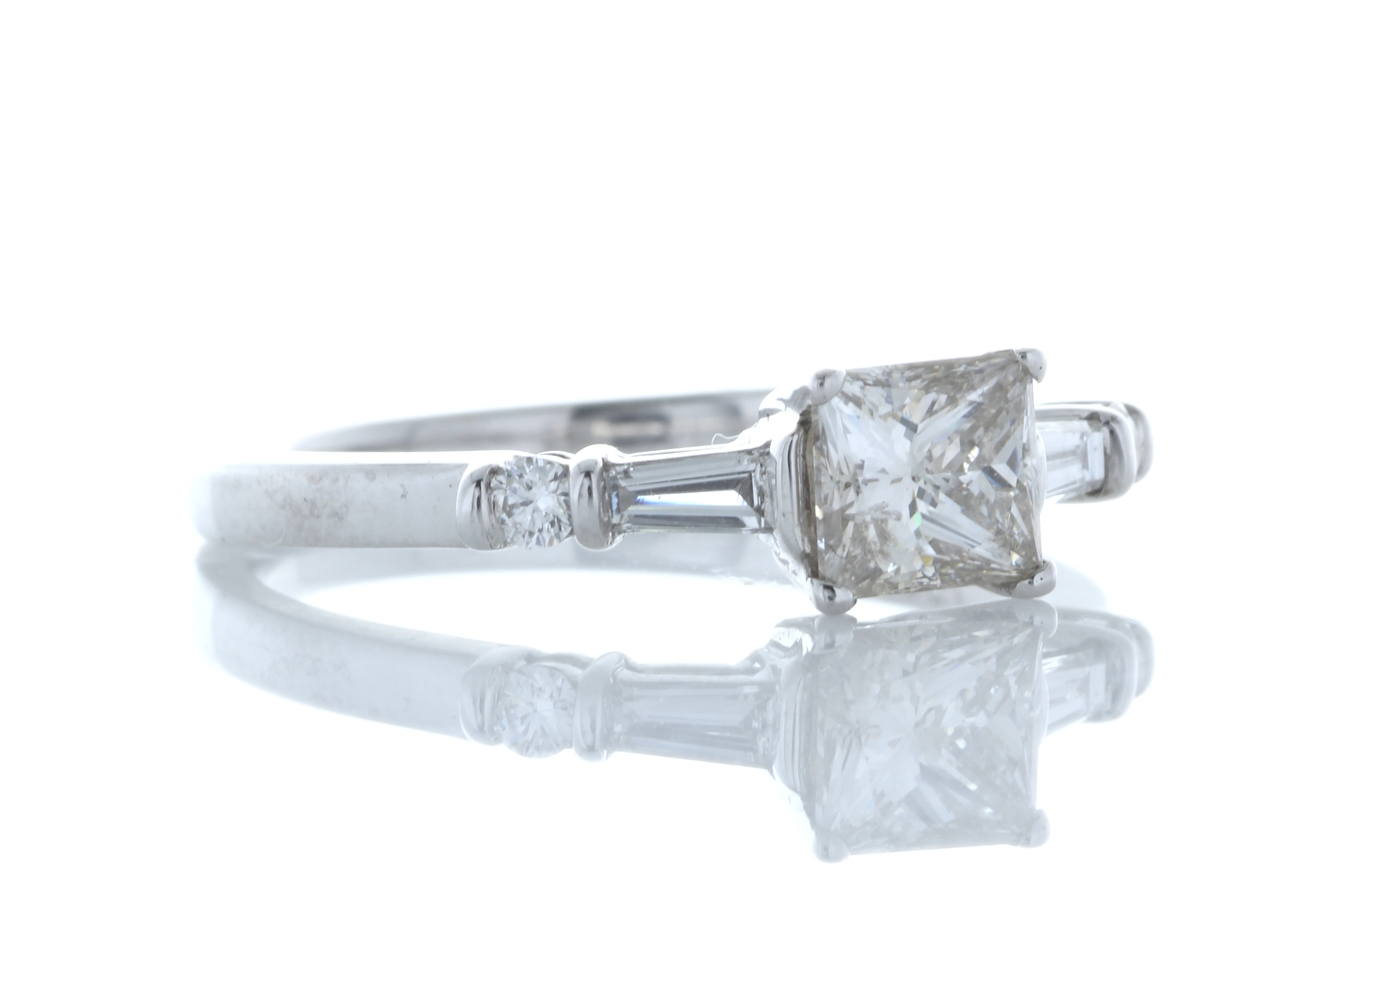 18ct White Gold Single Stone Princess Cut Diamond Ring With Set Shoulders (0.72) 0.96 Carats - Image 4 of 5